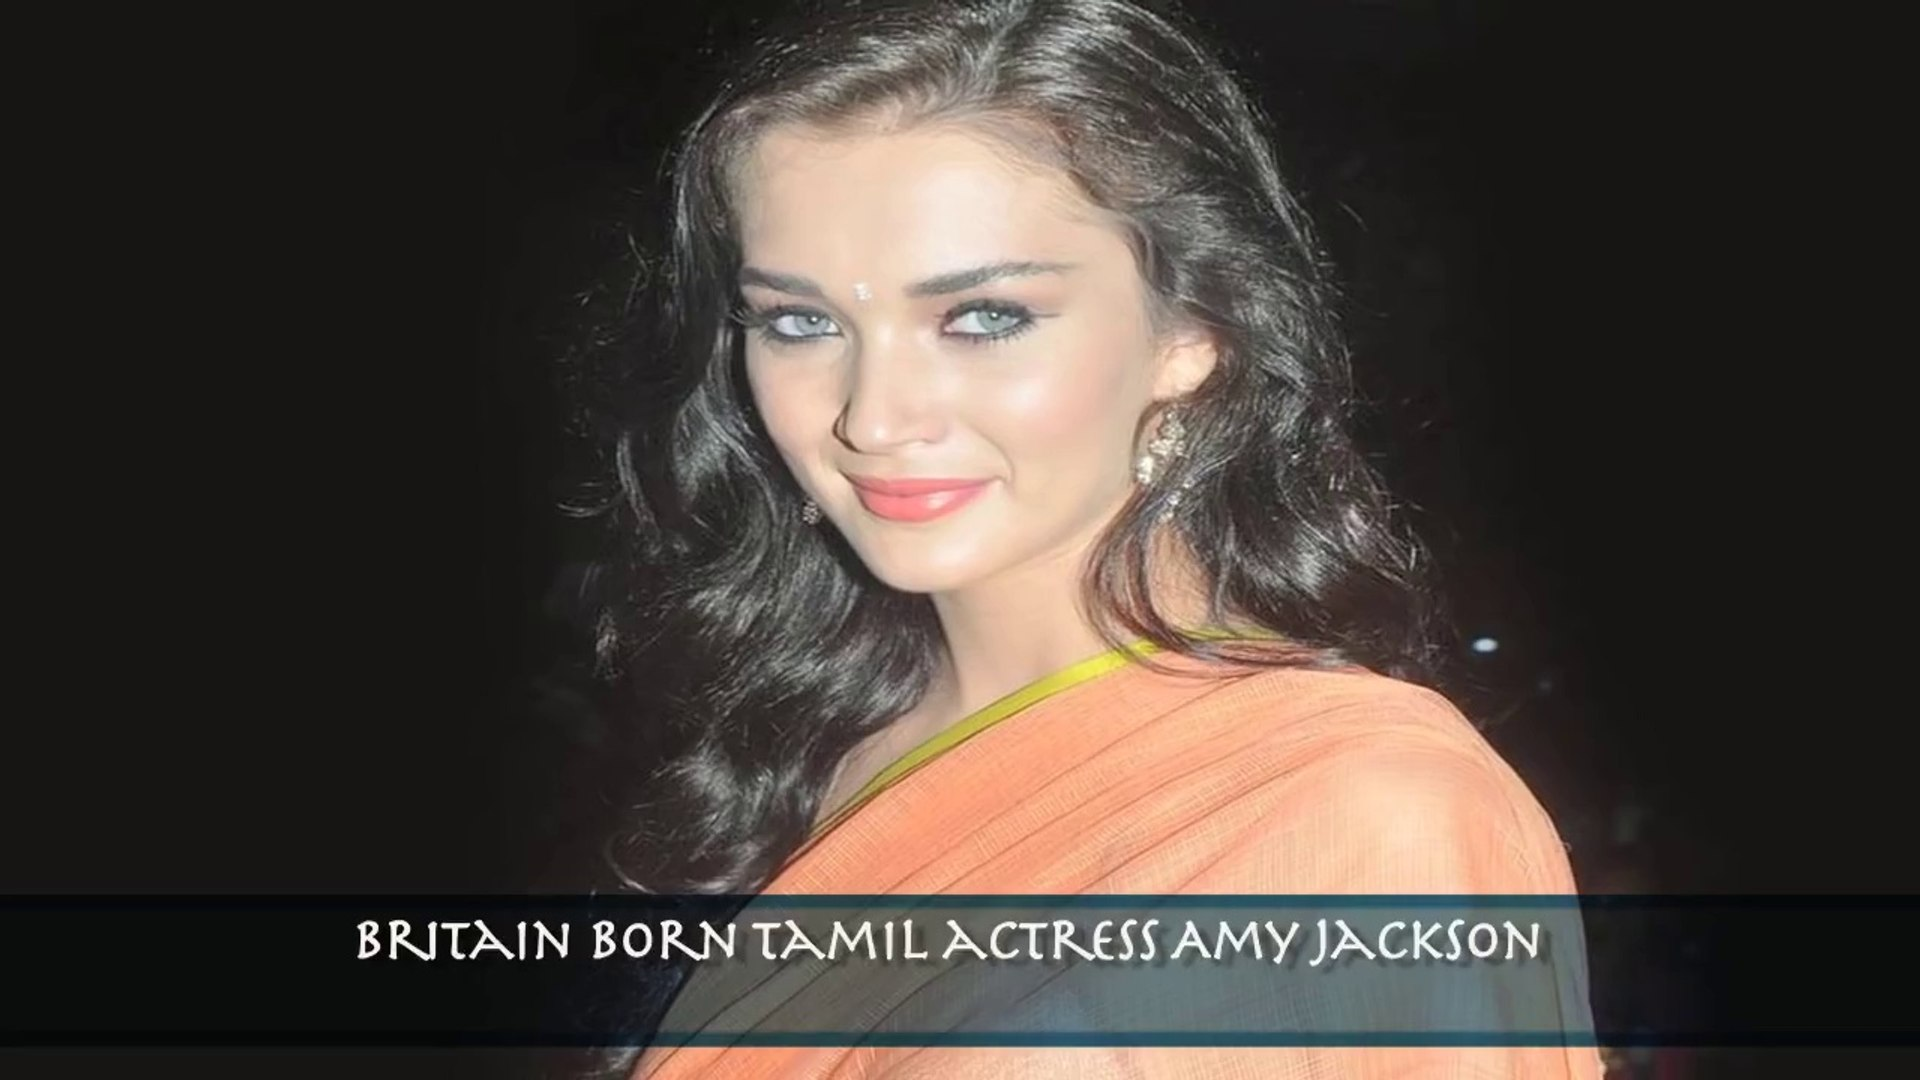 Amy Jackson Leaked Nude amy jackson hot topless photos leaked - video dailymotion